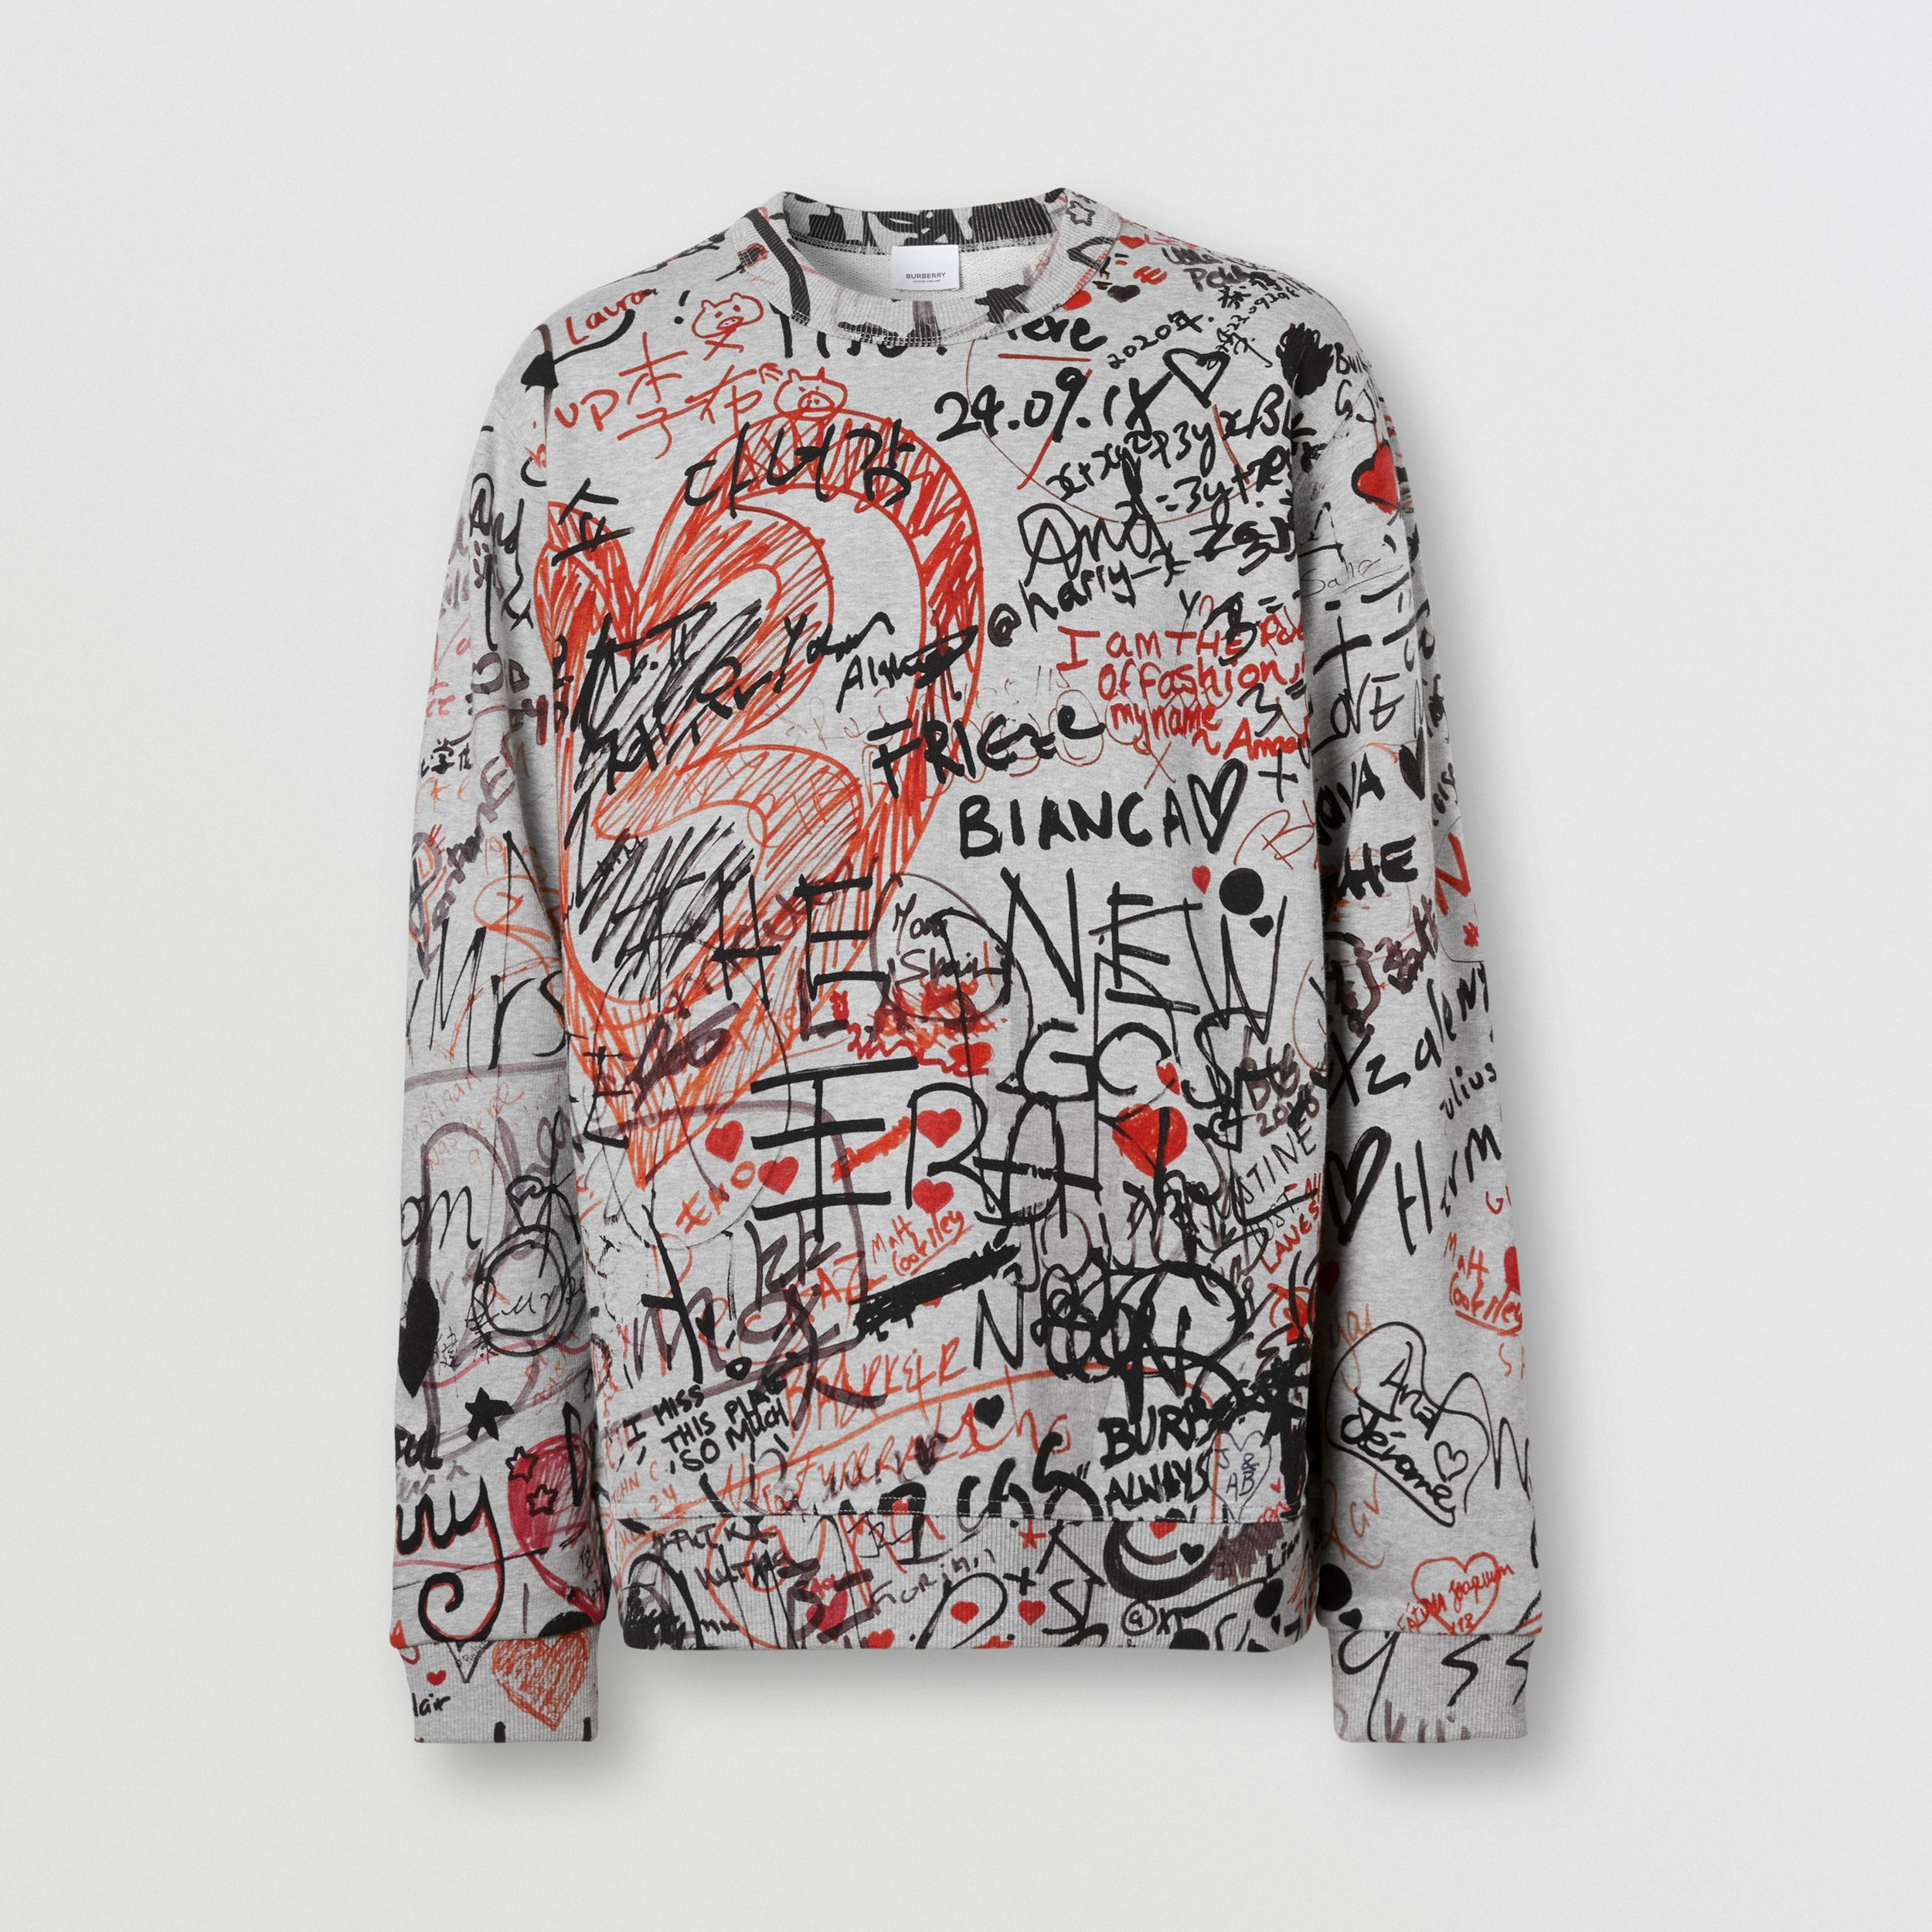 Graffiti Print Cotton Sweatshirt in Pale Grey Melange - Men | Burberry Australia - 4